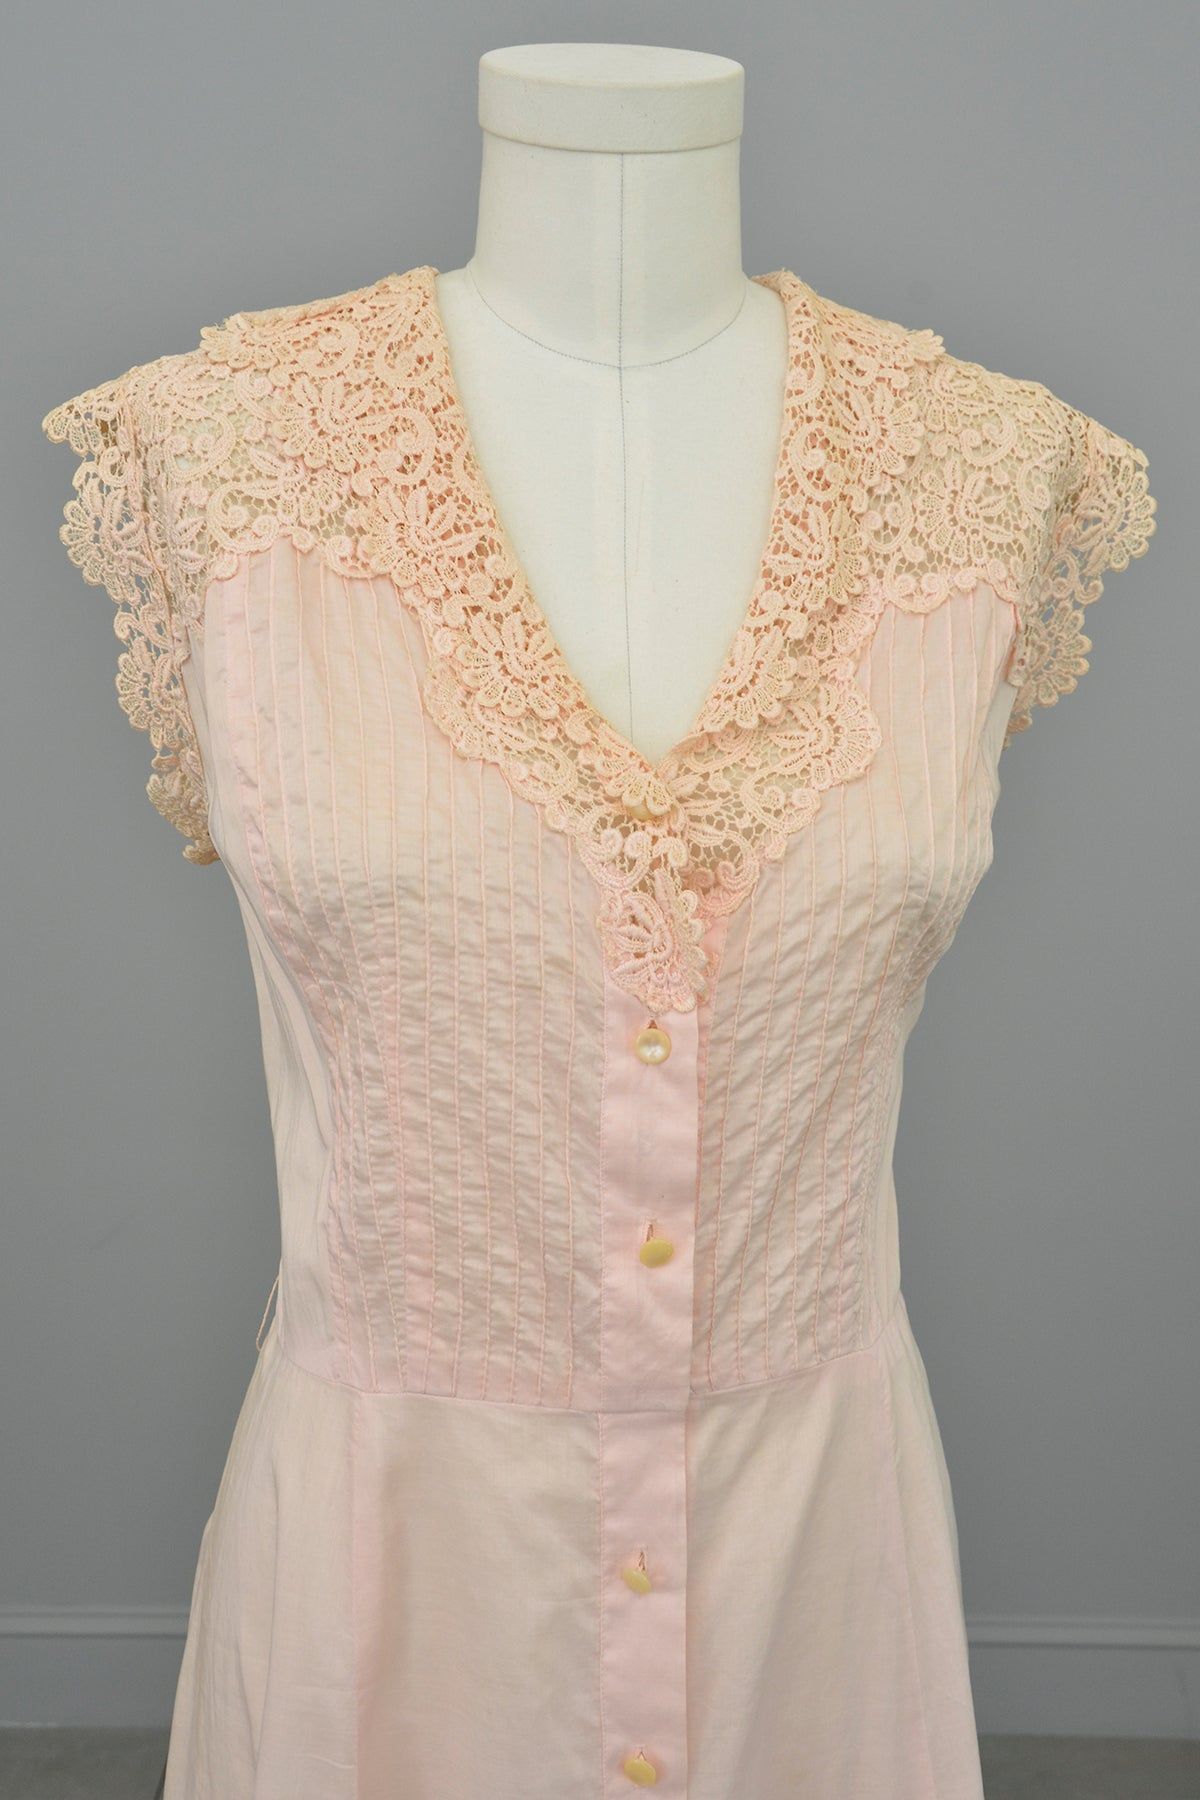 1940s 50s Light Pink Housedress with Crochet detail | 40s Dress | Size L